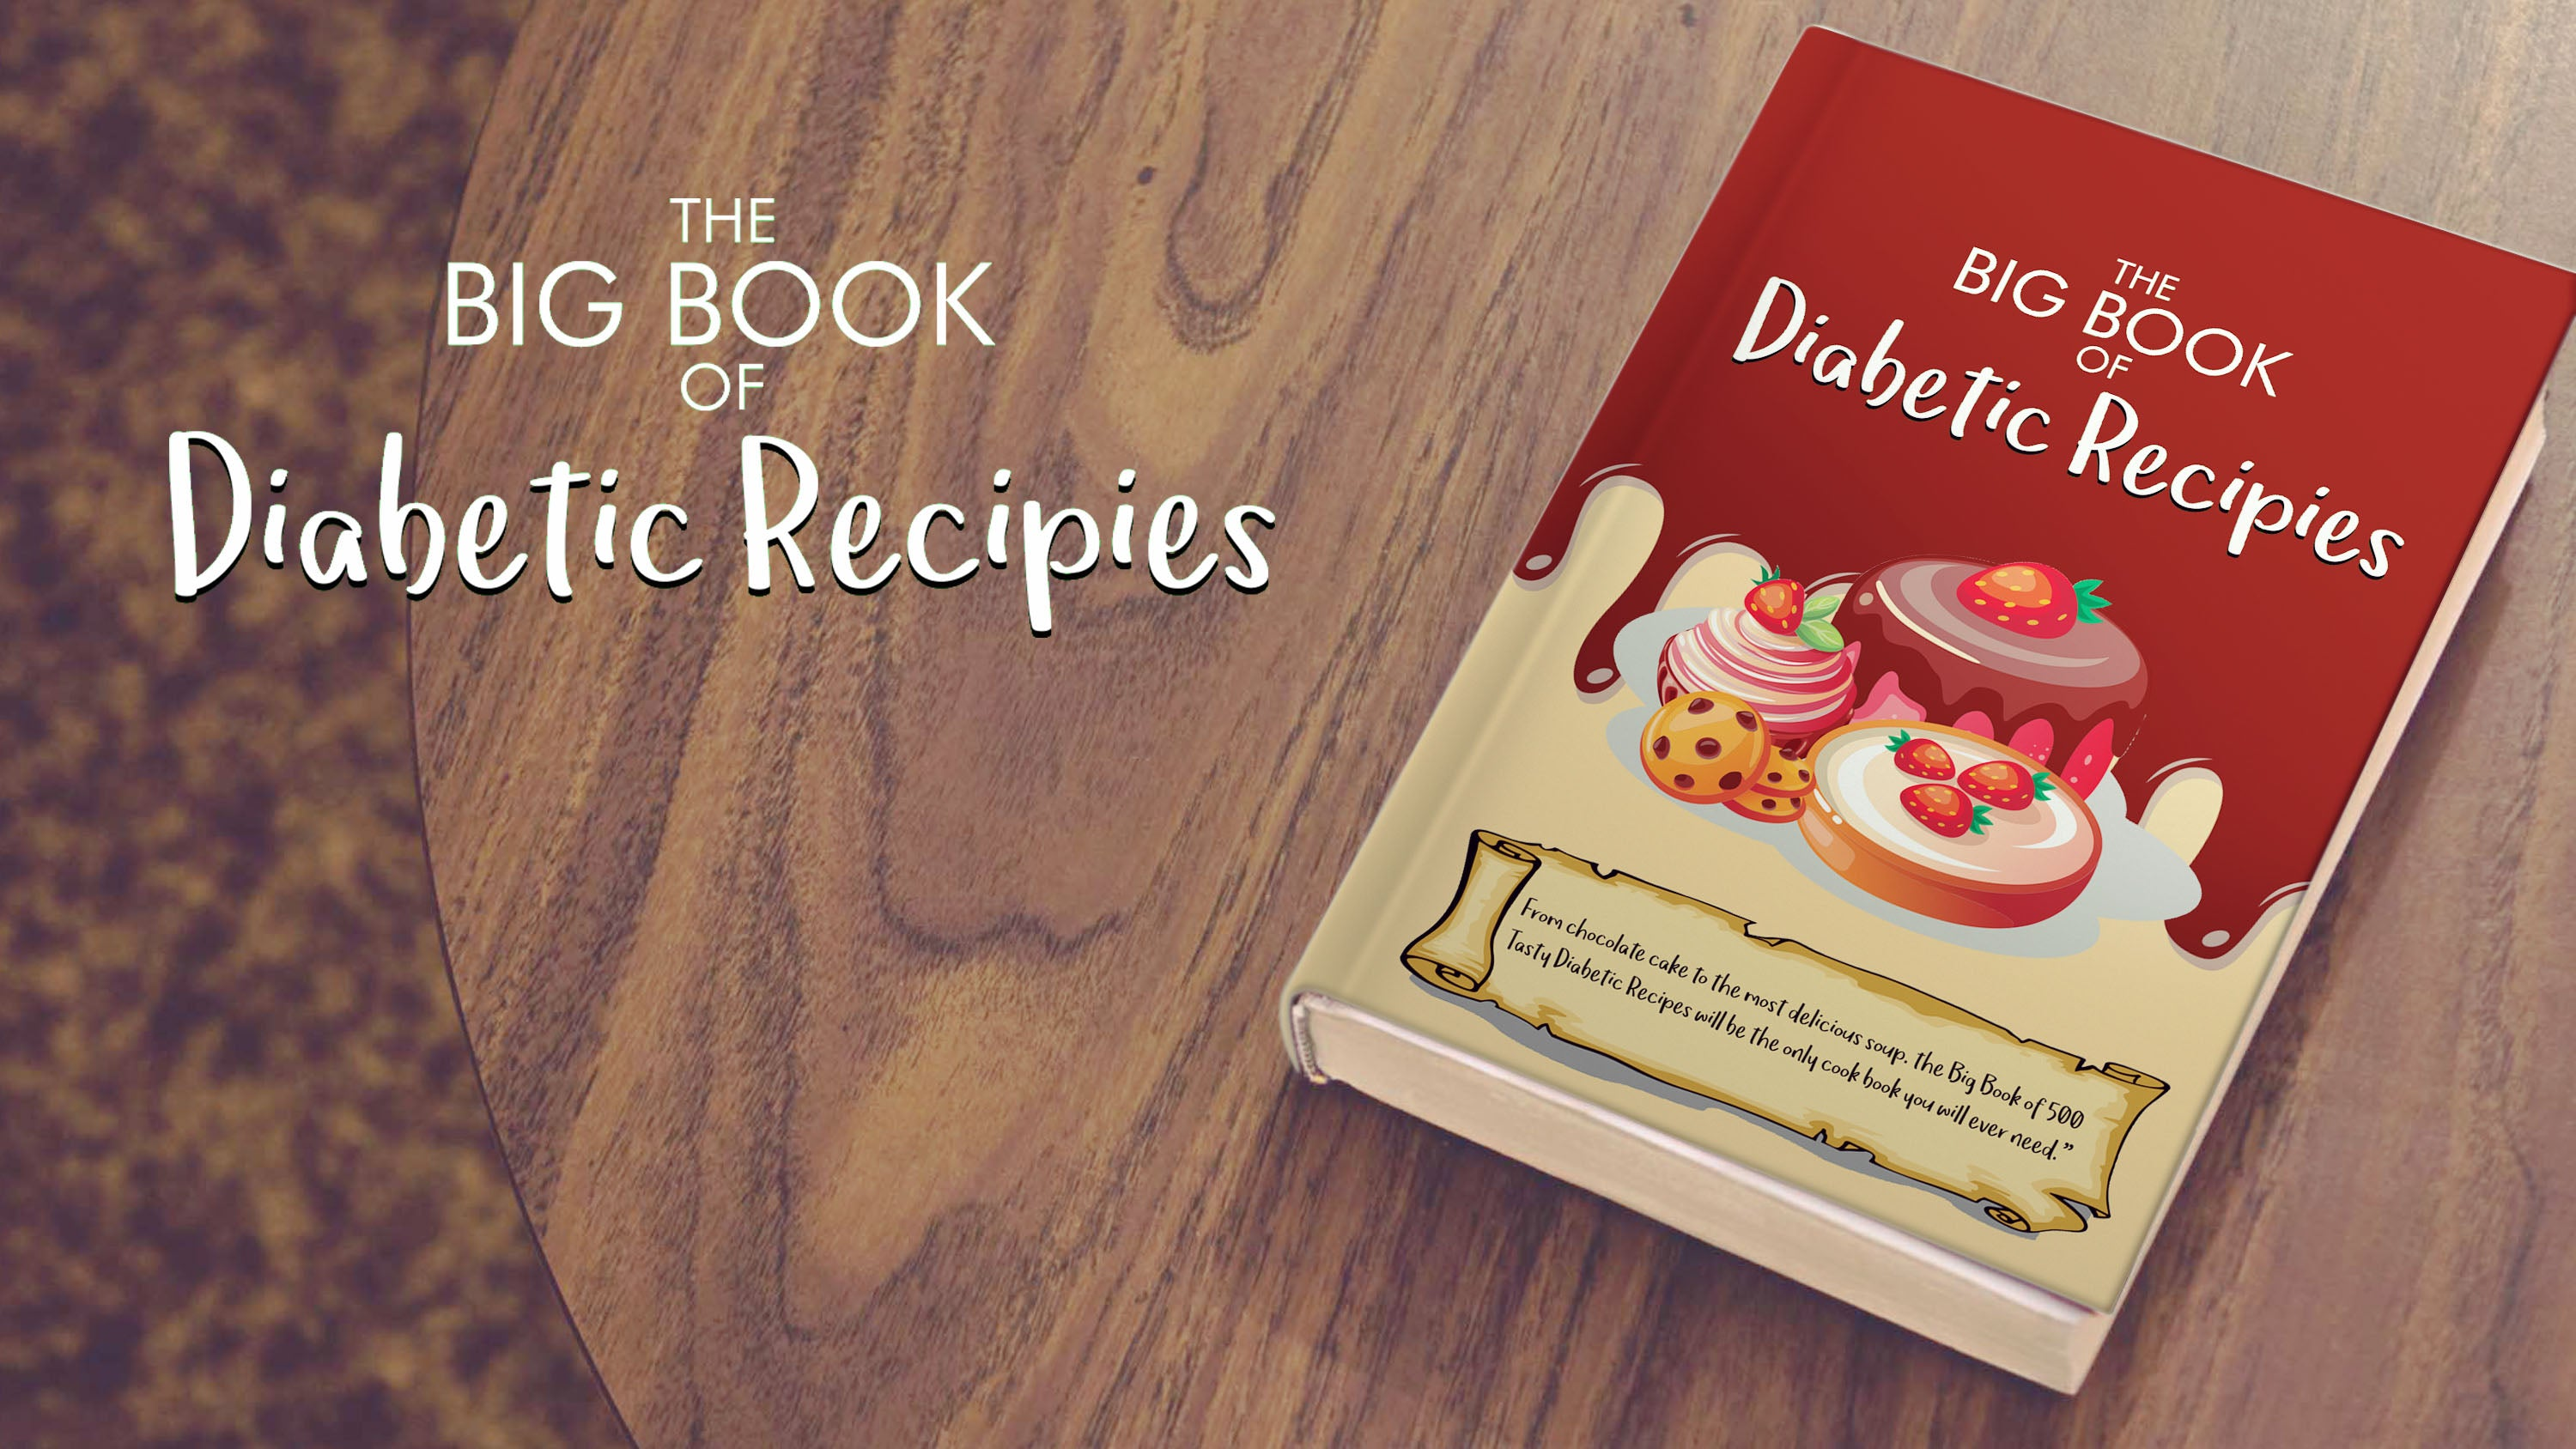 Over 500 Delectably Appetizing Diabetic Recipes